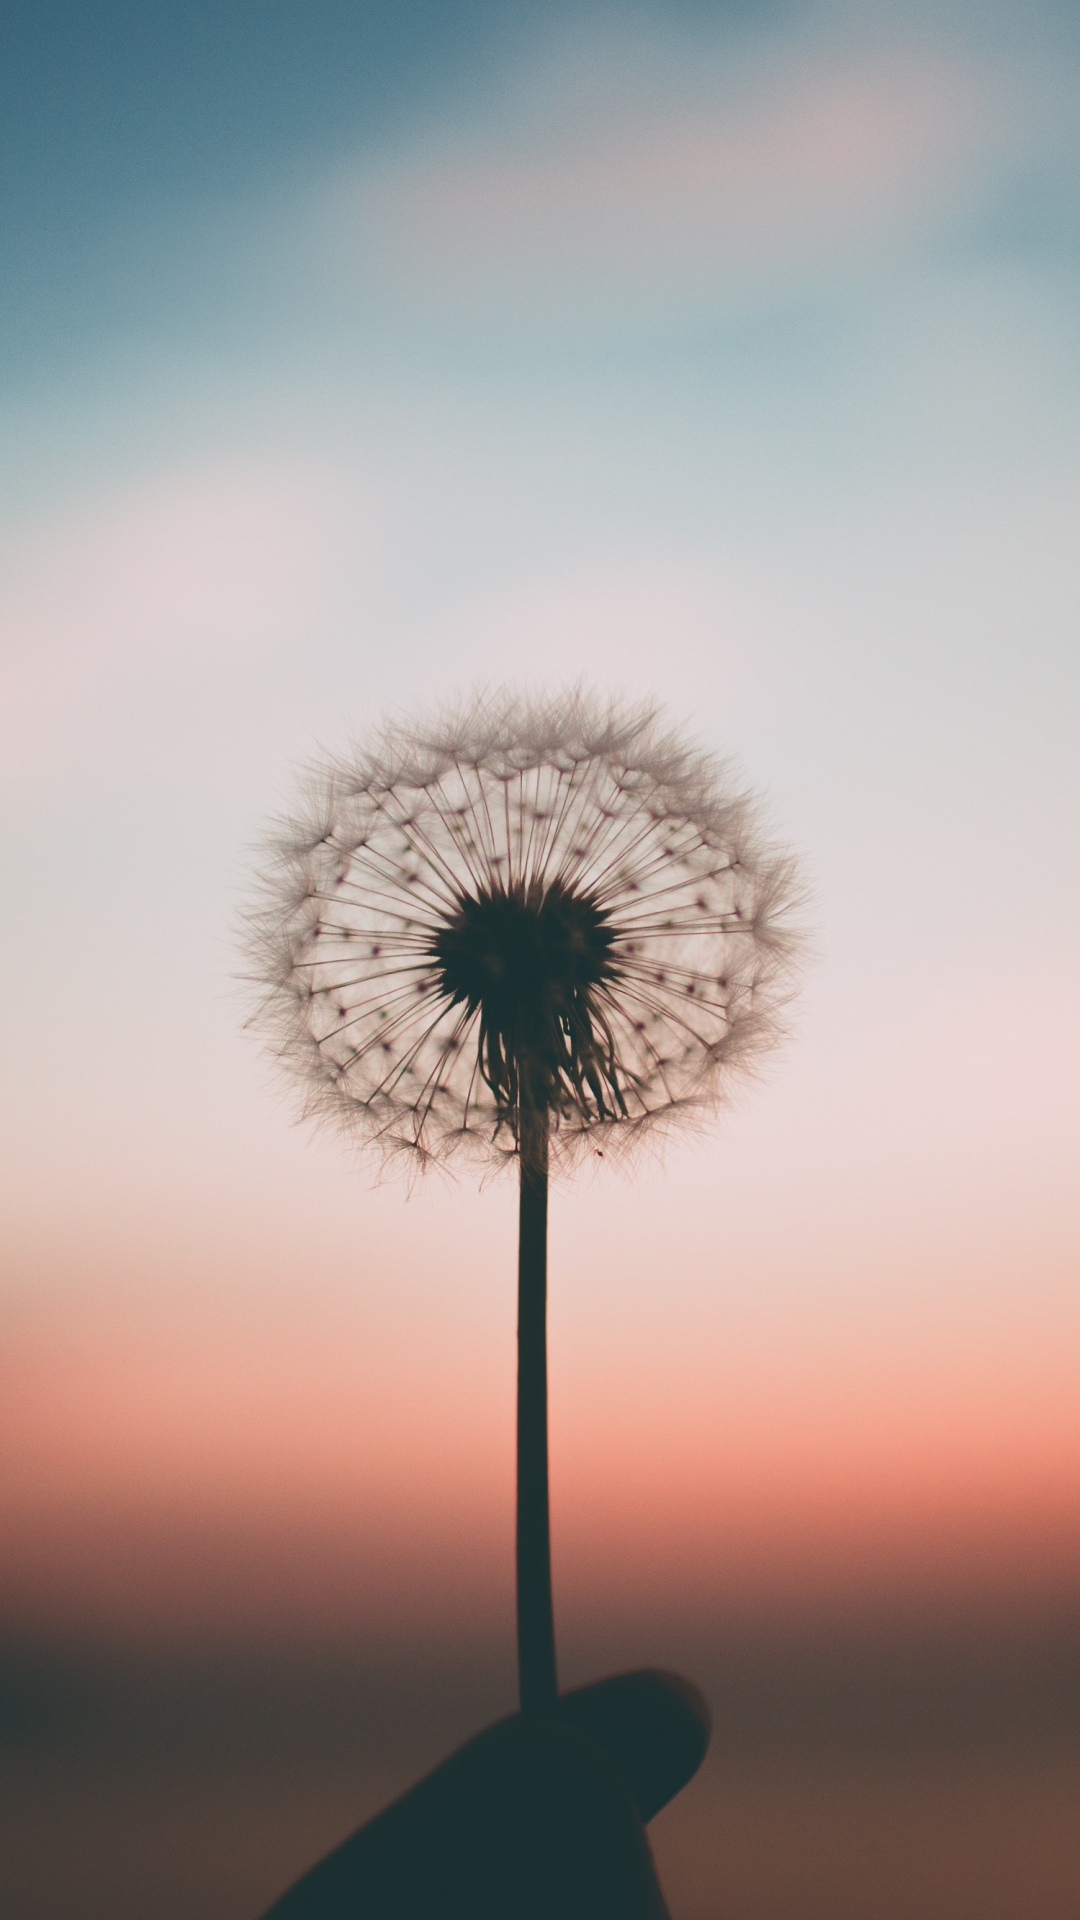 iphone wallpaper dandelion blur 3Wallpapers : notre sélection de fonds d'écran du 02/11/2017